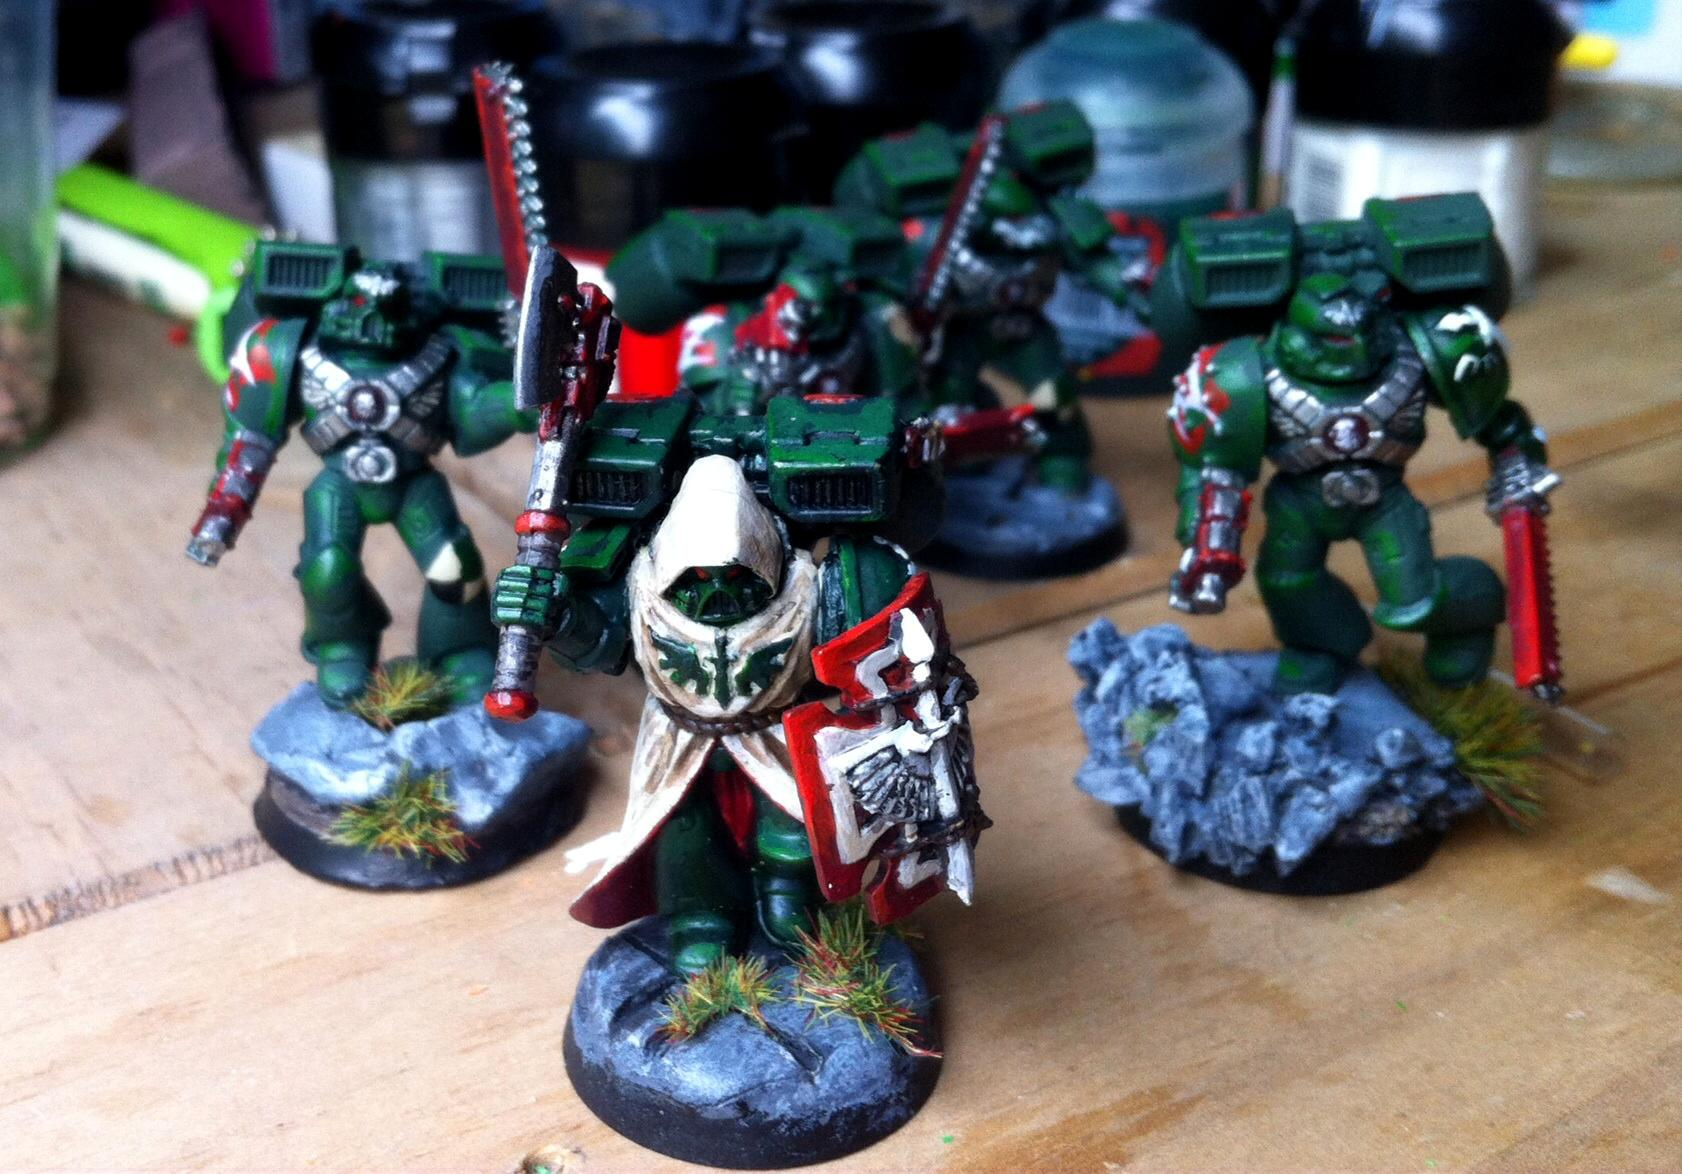 Assault, Assault Squad, Close Combat, Dark Angels, Fast Attack, Imperial, Imperium, Jump Pack, Lbsf, Mankind, Melee, Space, Space Marines, Warhammer 40,000